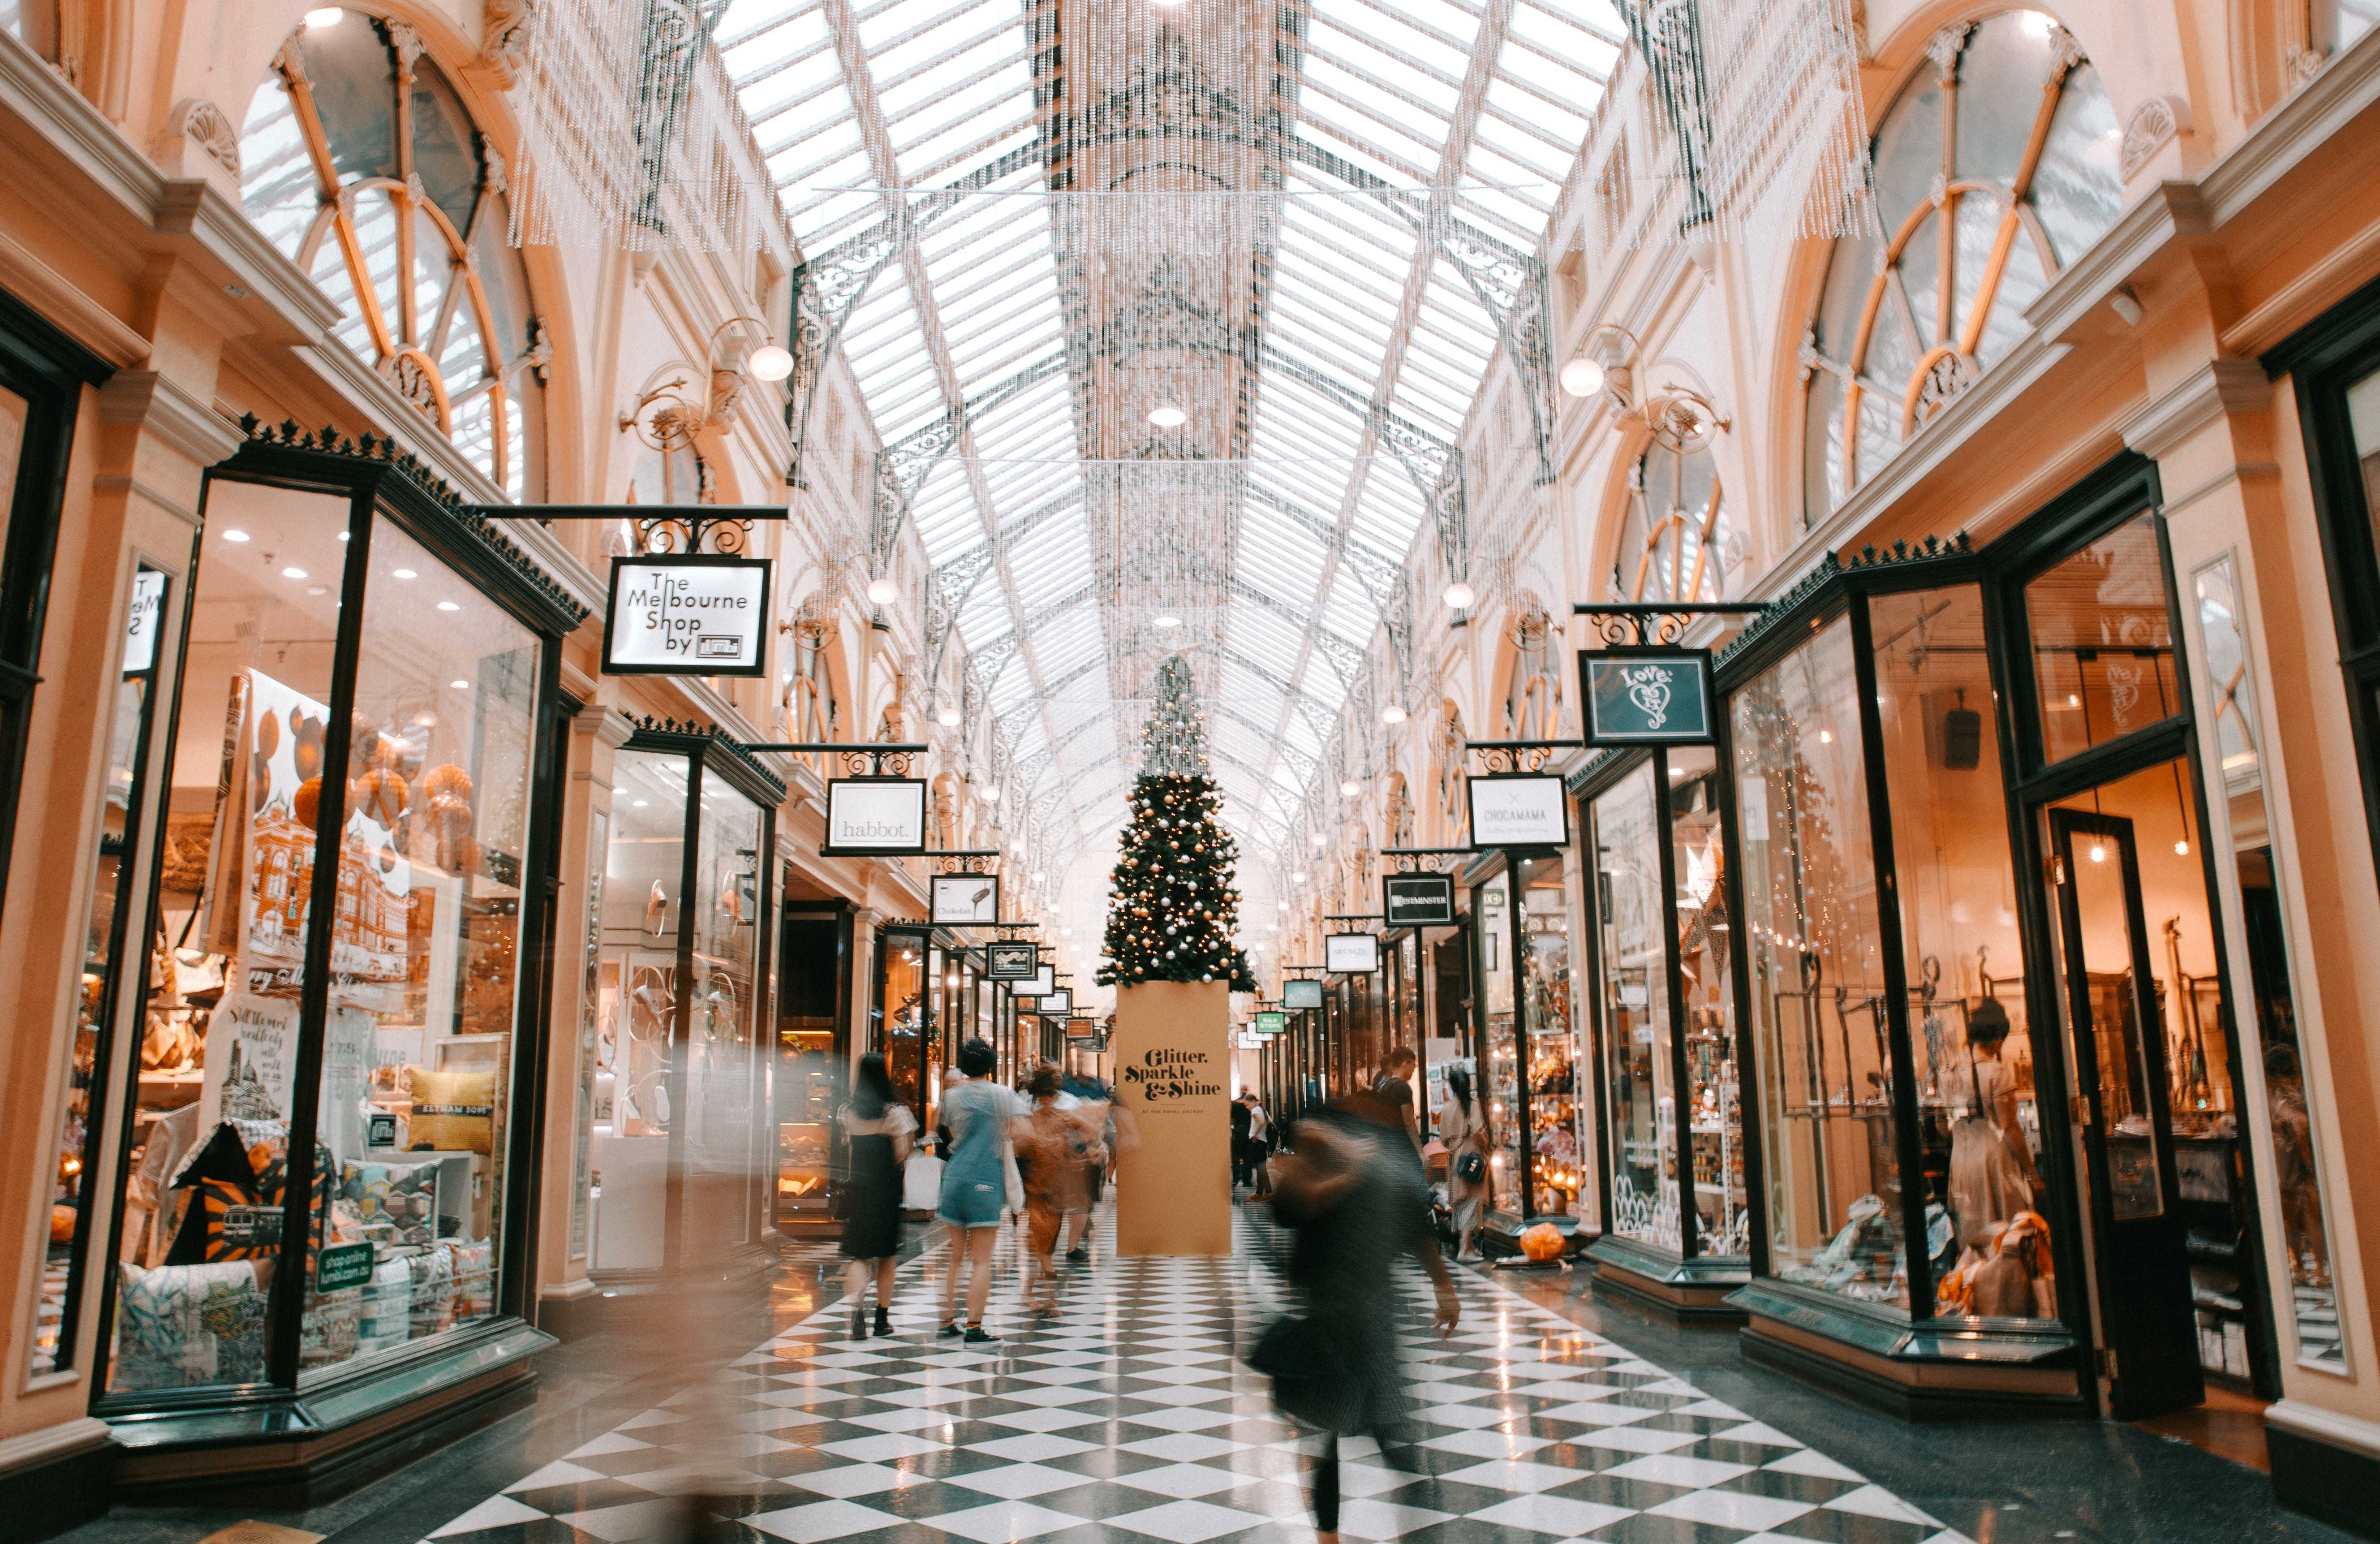 Altitude Media pre order discount shopping mall in melbourne australia with rows of shop fronts